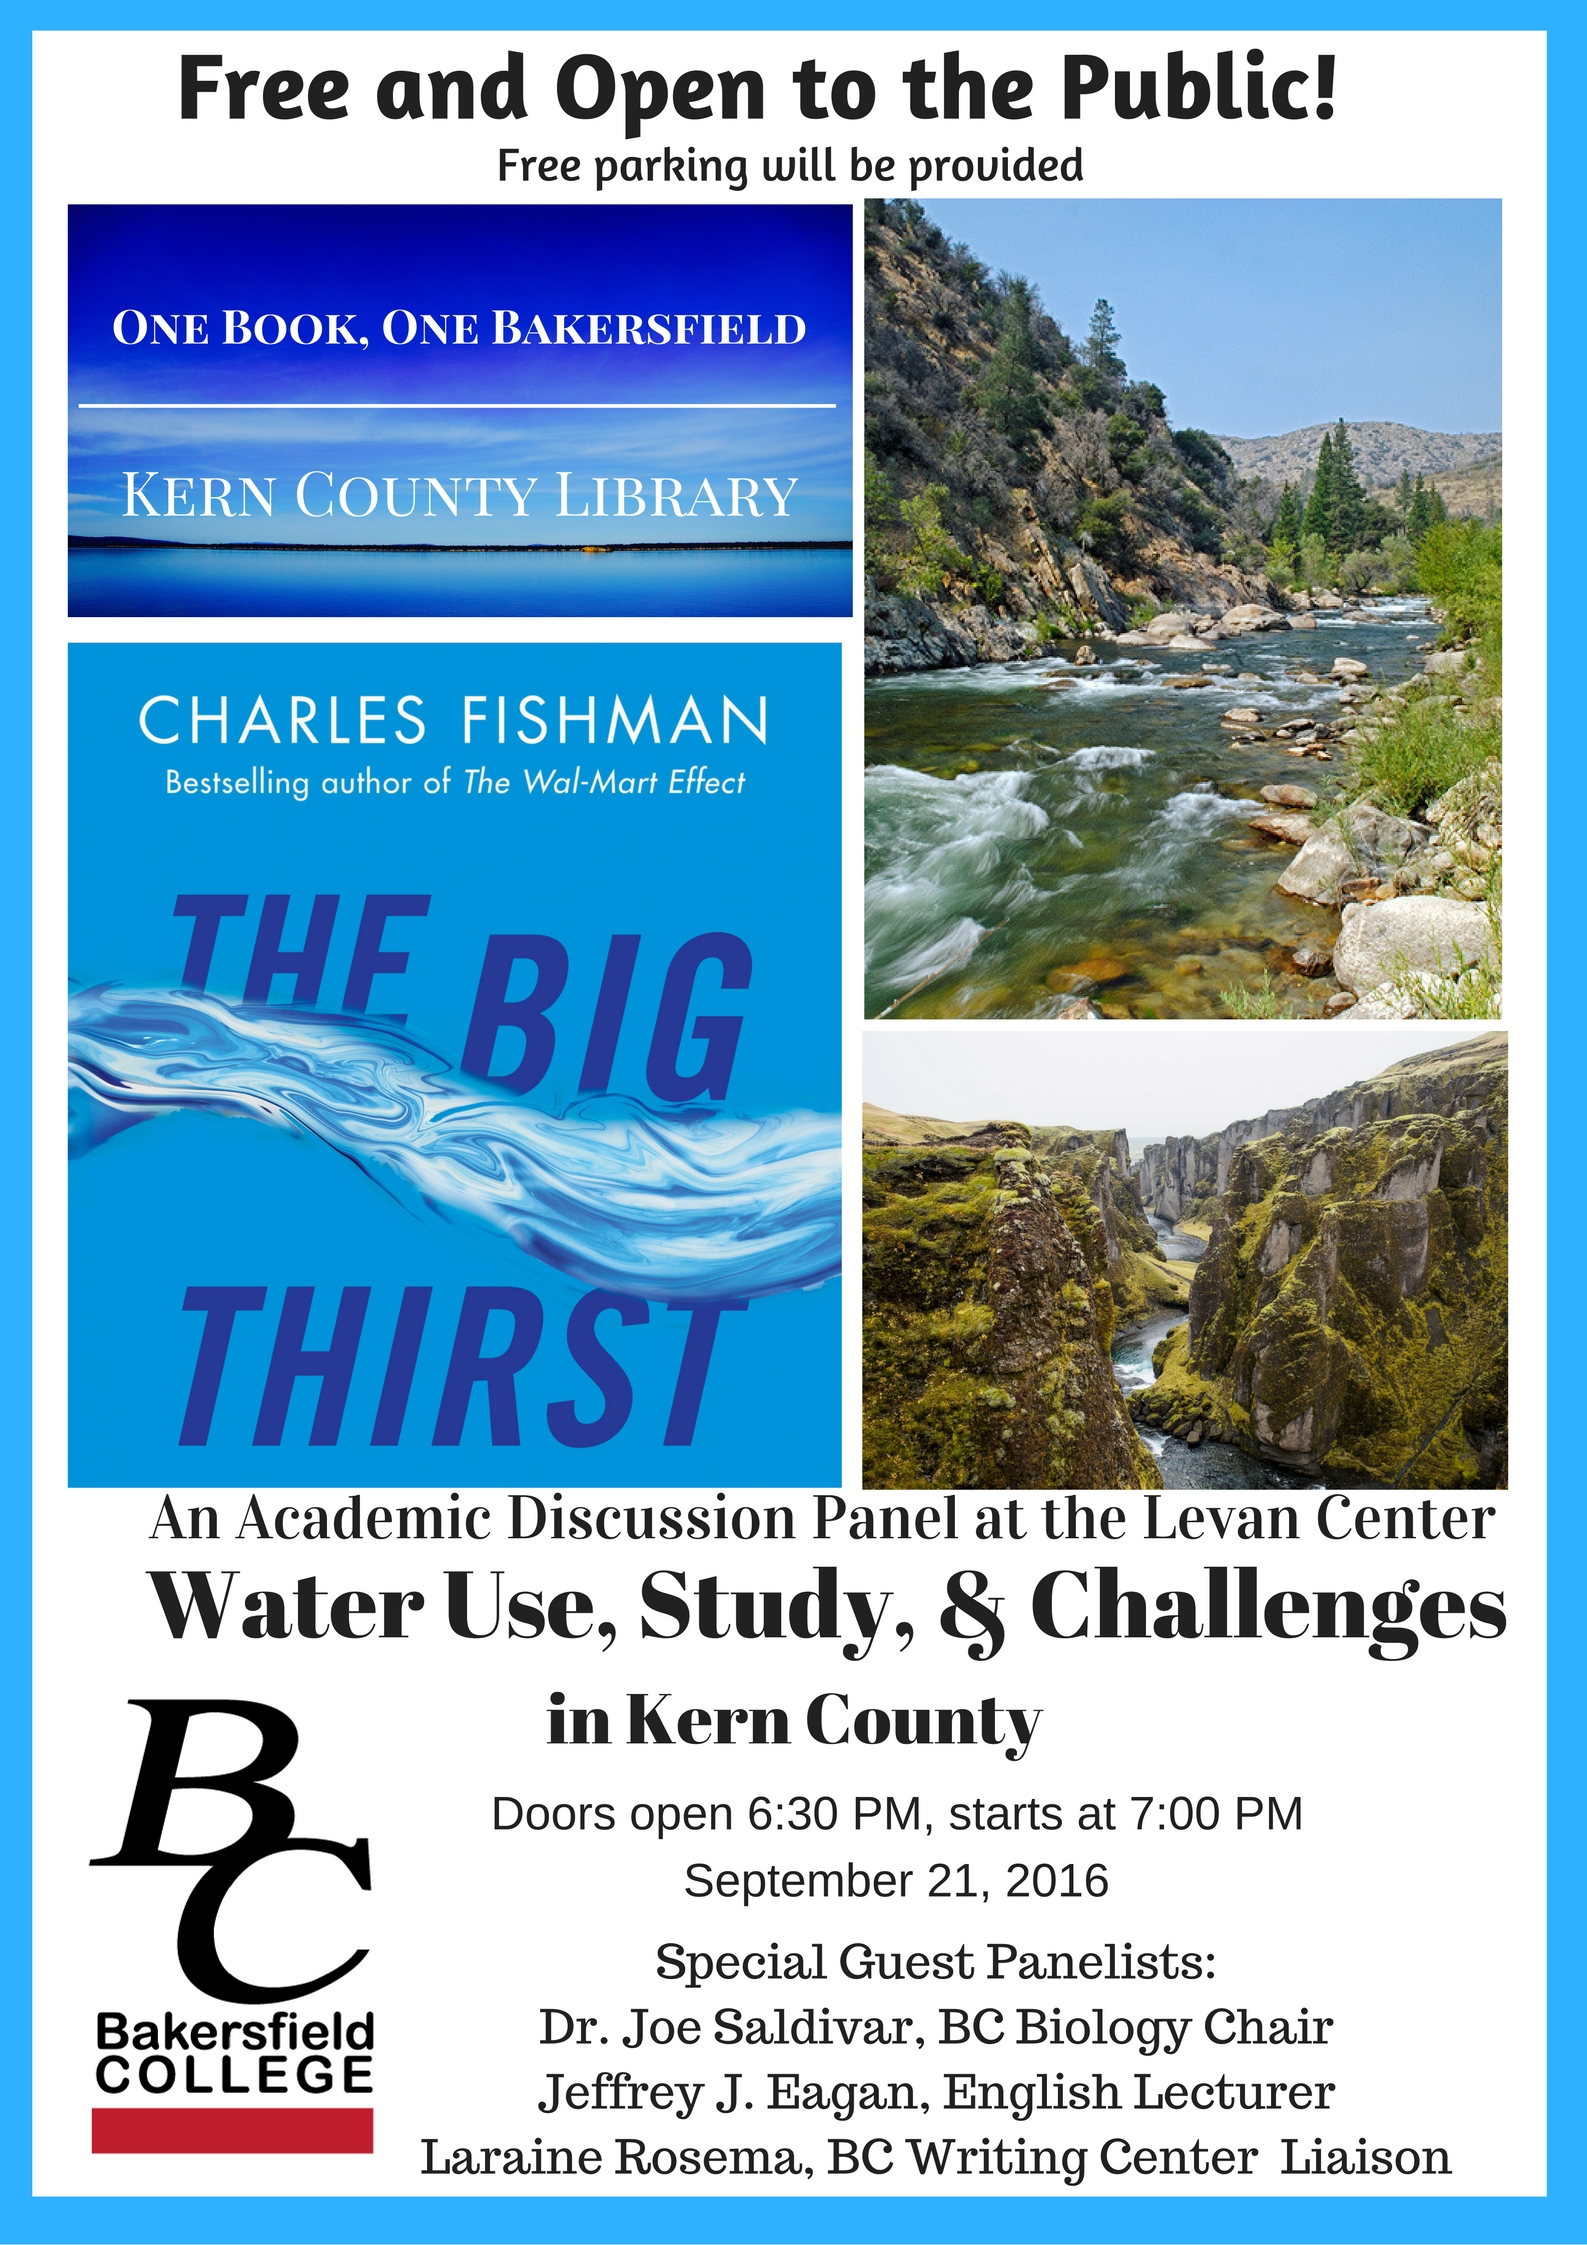 Water Use, Study and Challenges in Kern County